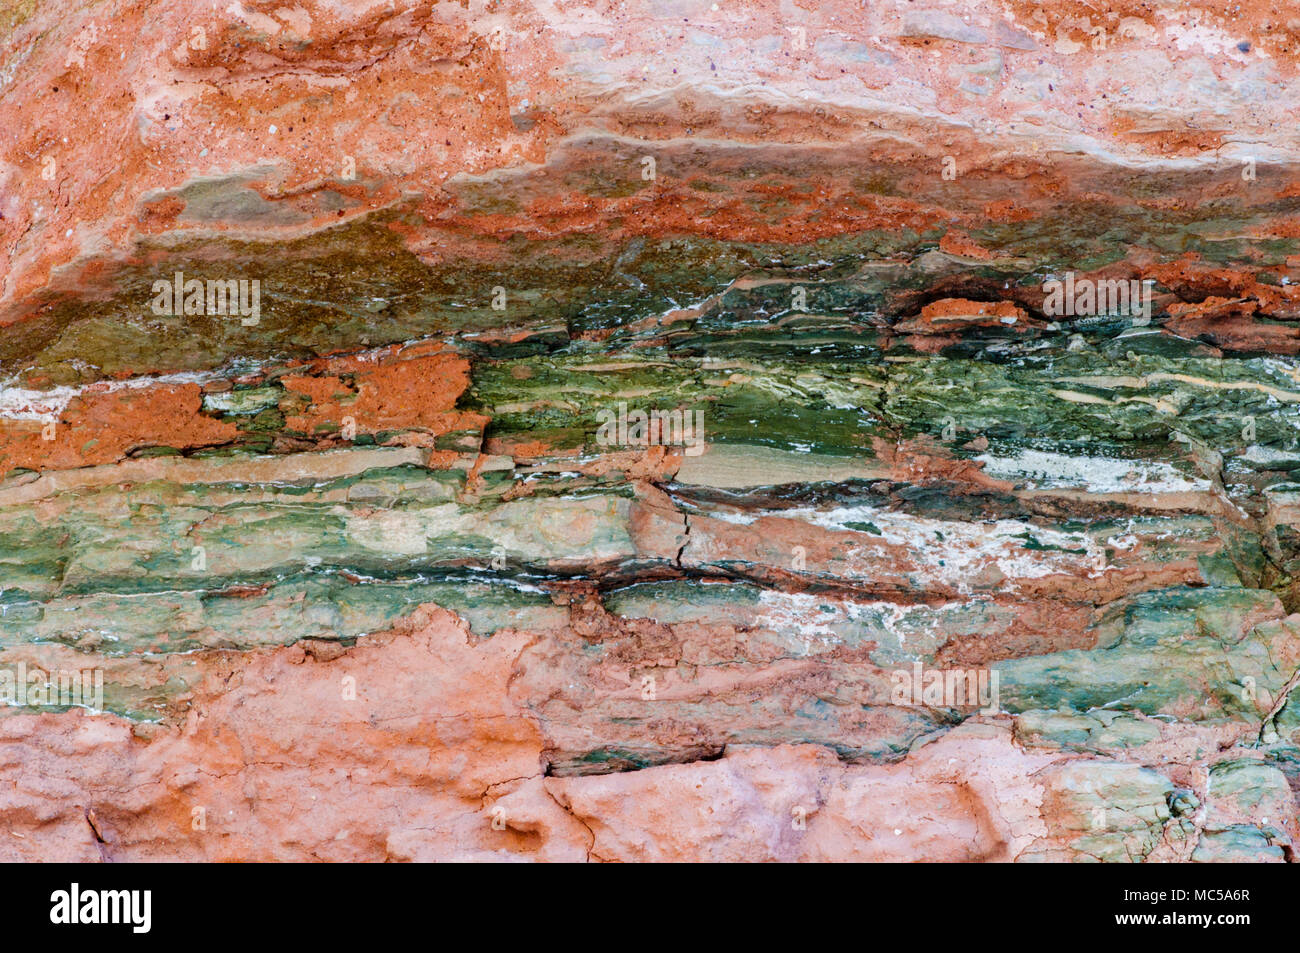 Bright Angel Shale formation in lower Marble Canyon; Grand Canyon National Park, Arizona - Stock Image